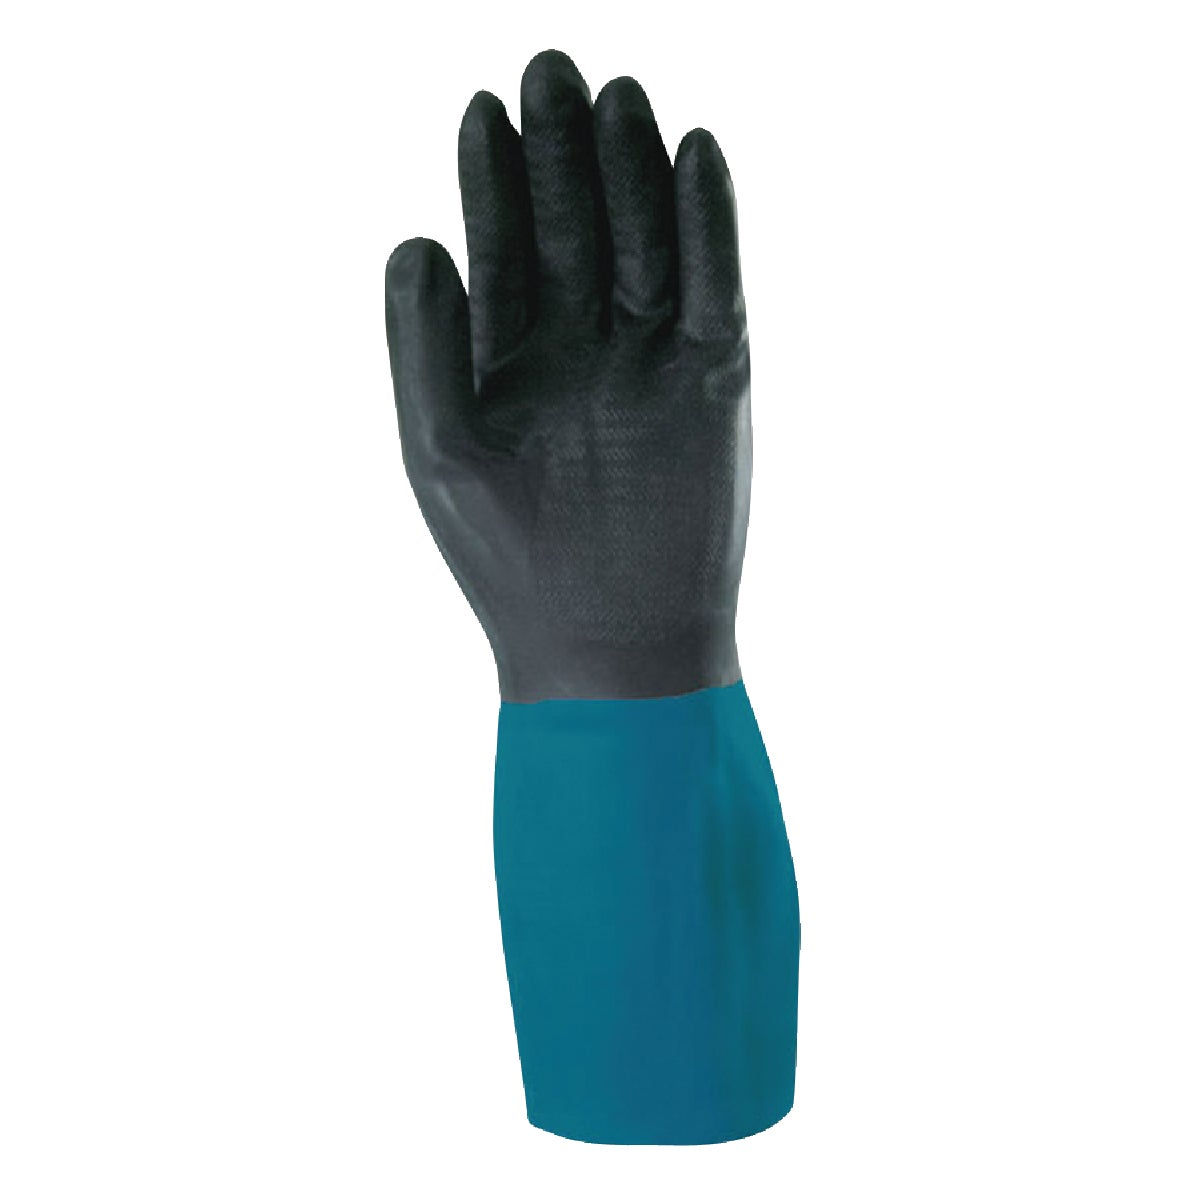 "13"" LATEX NEOPRENE GLOVE"